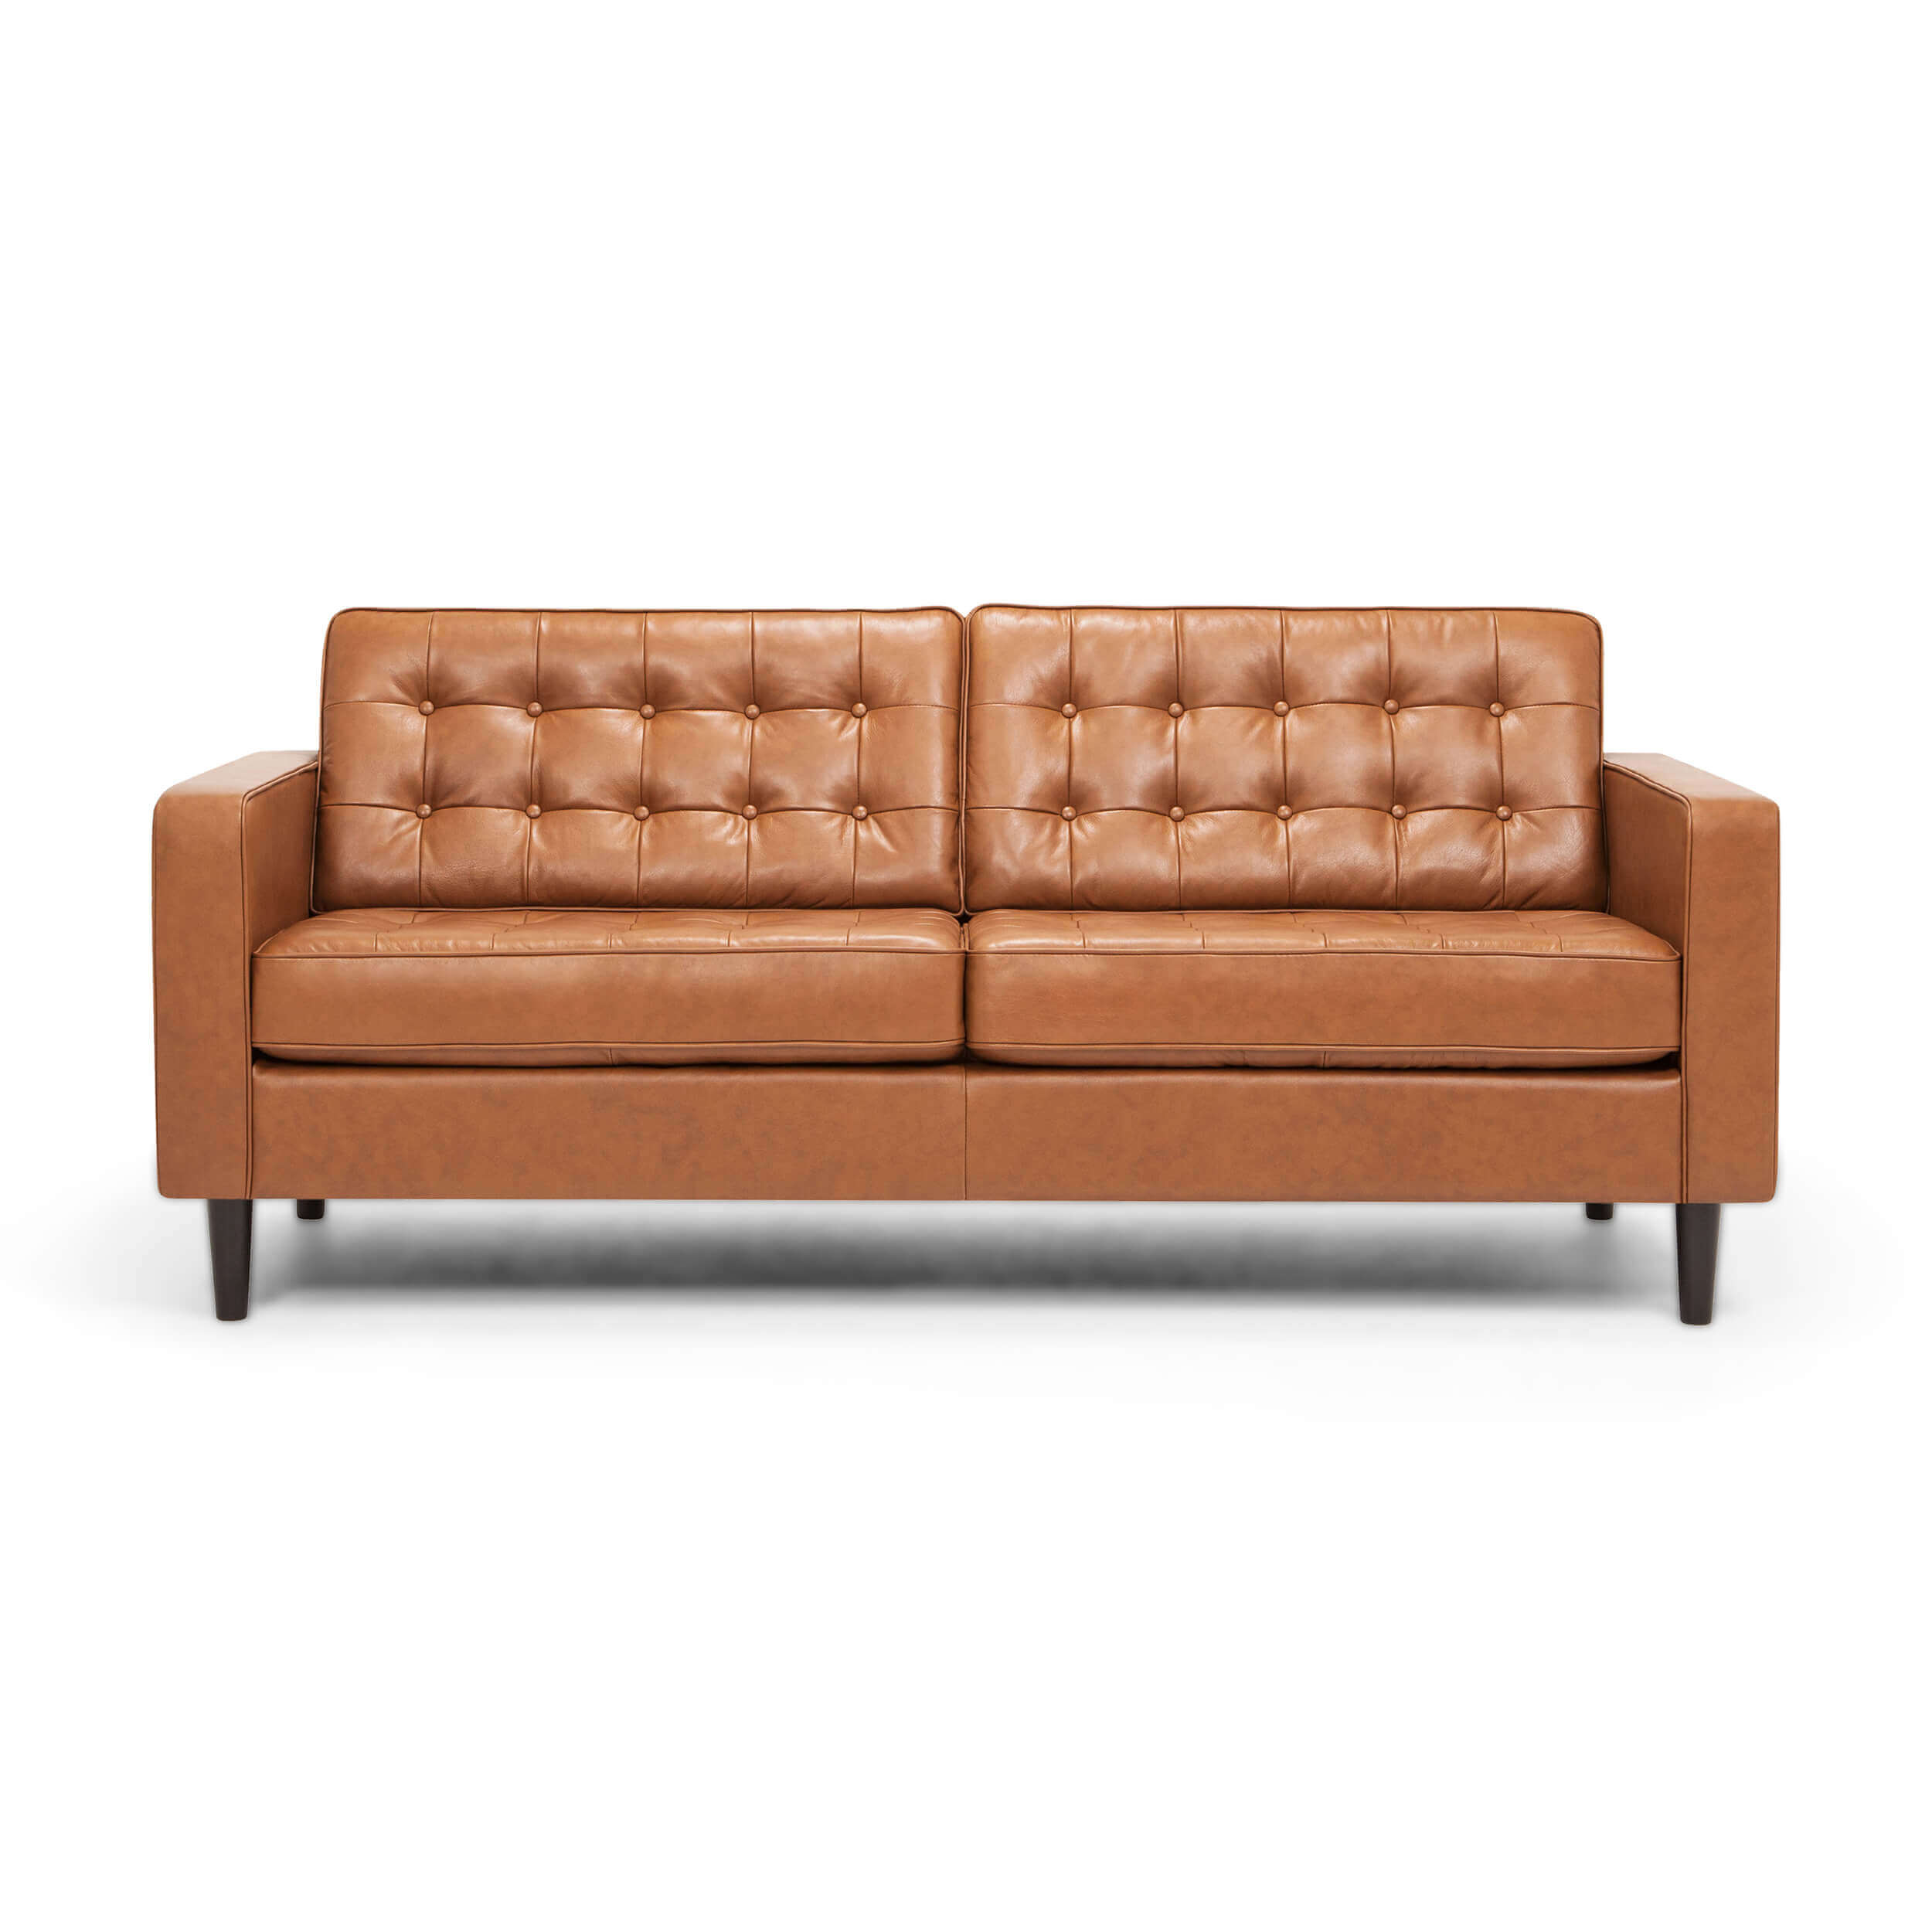 Apartment Size Sofas Smaller Modern Couches Eq3